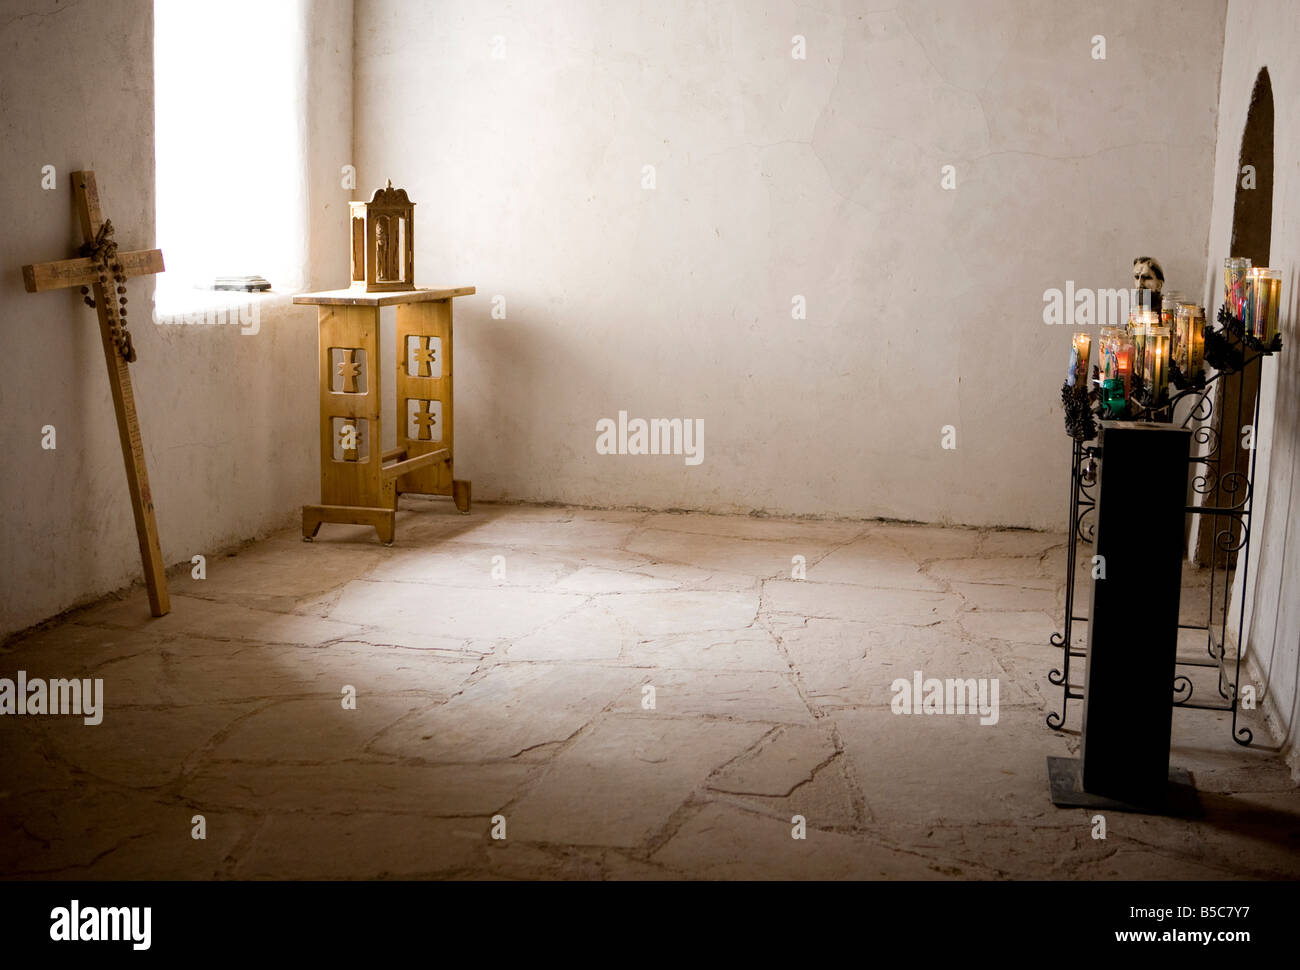 A Chapel in Chimayo, New Mexico - Stock Image